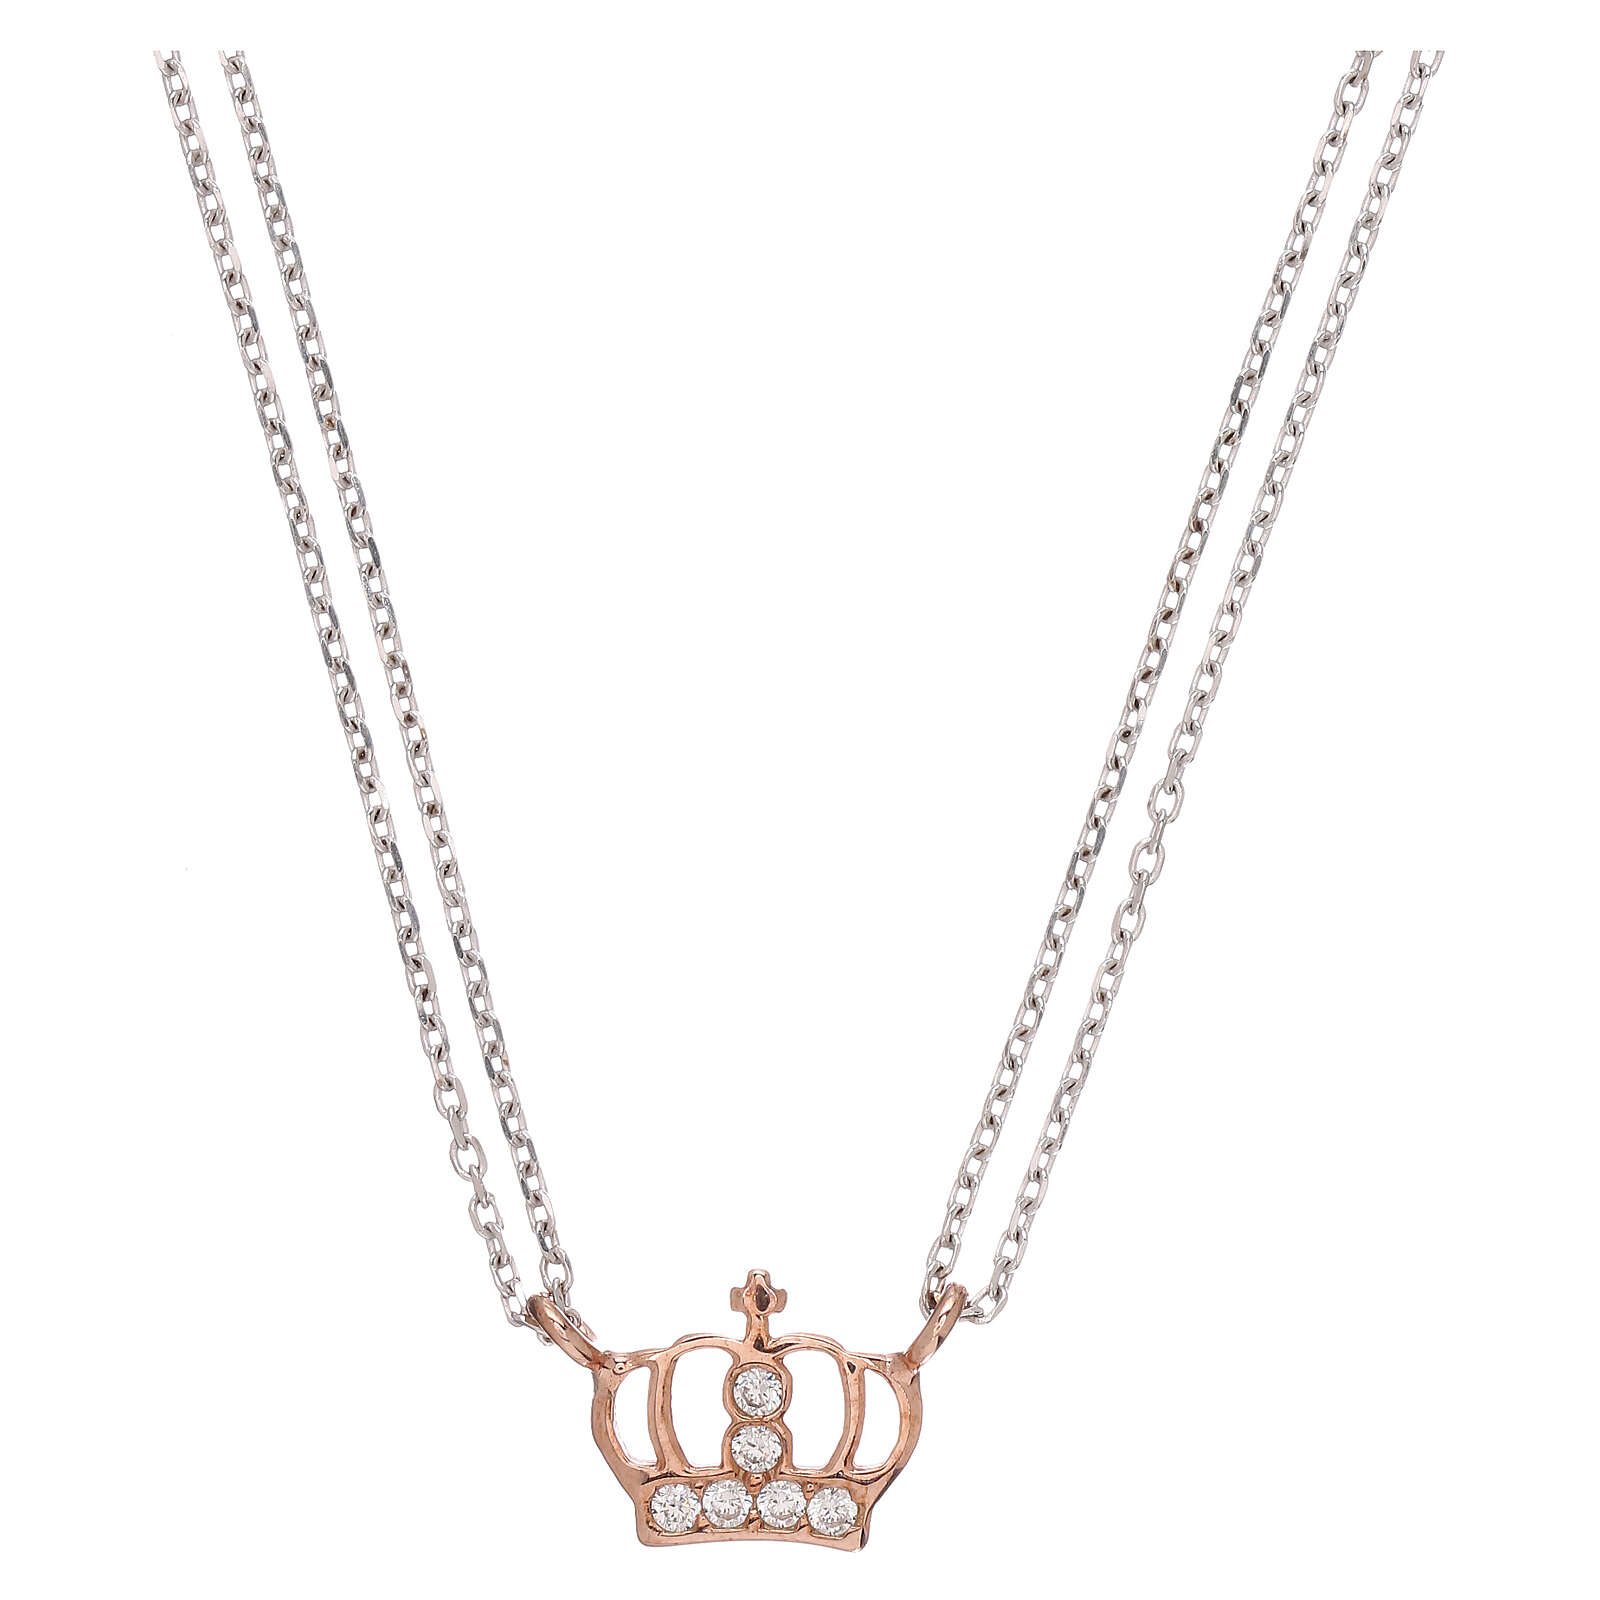 AMEN Necklace 925 silver rhodium/rosé finish crown with white zircons 4